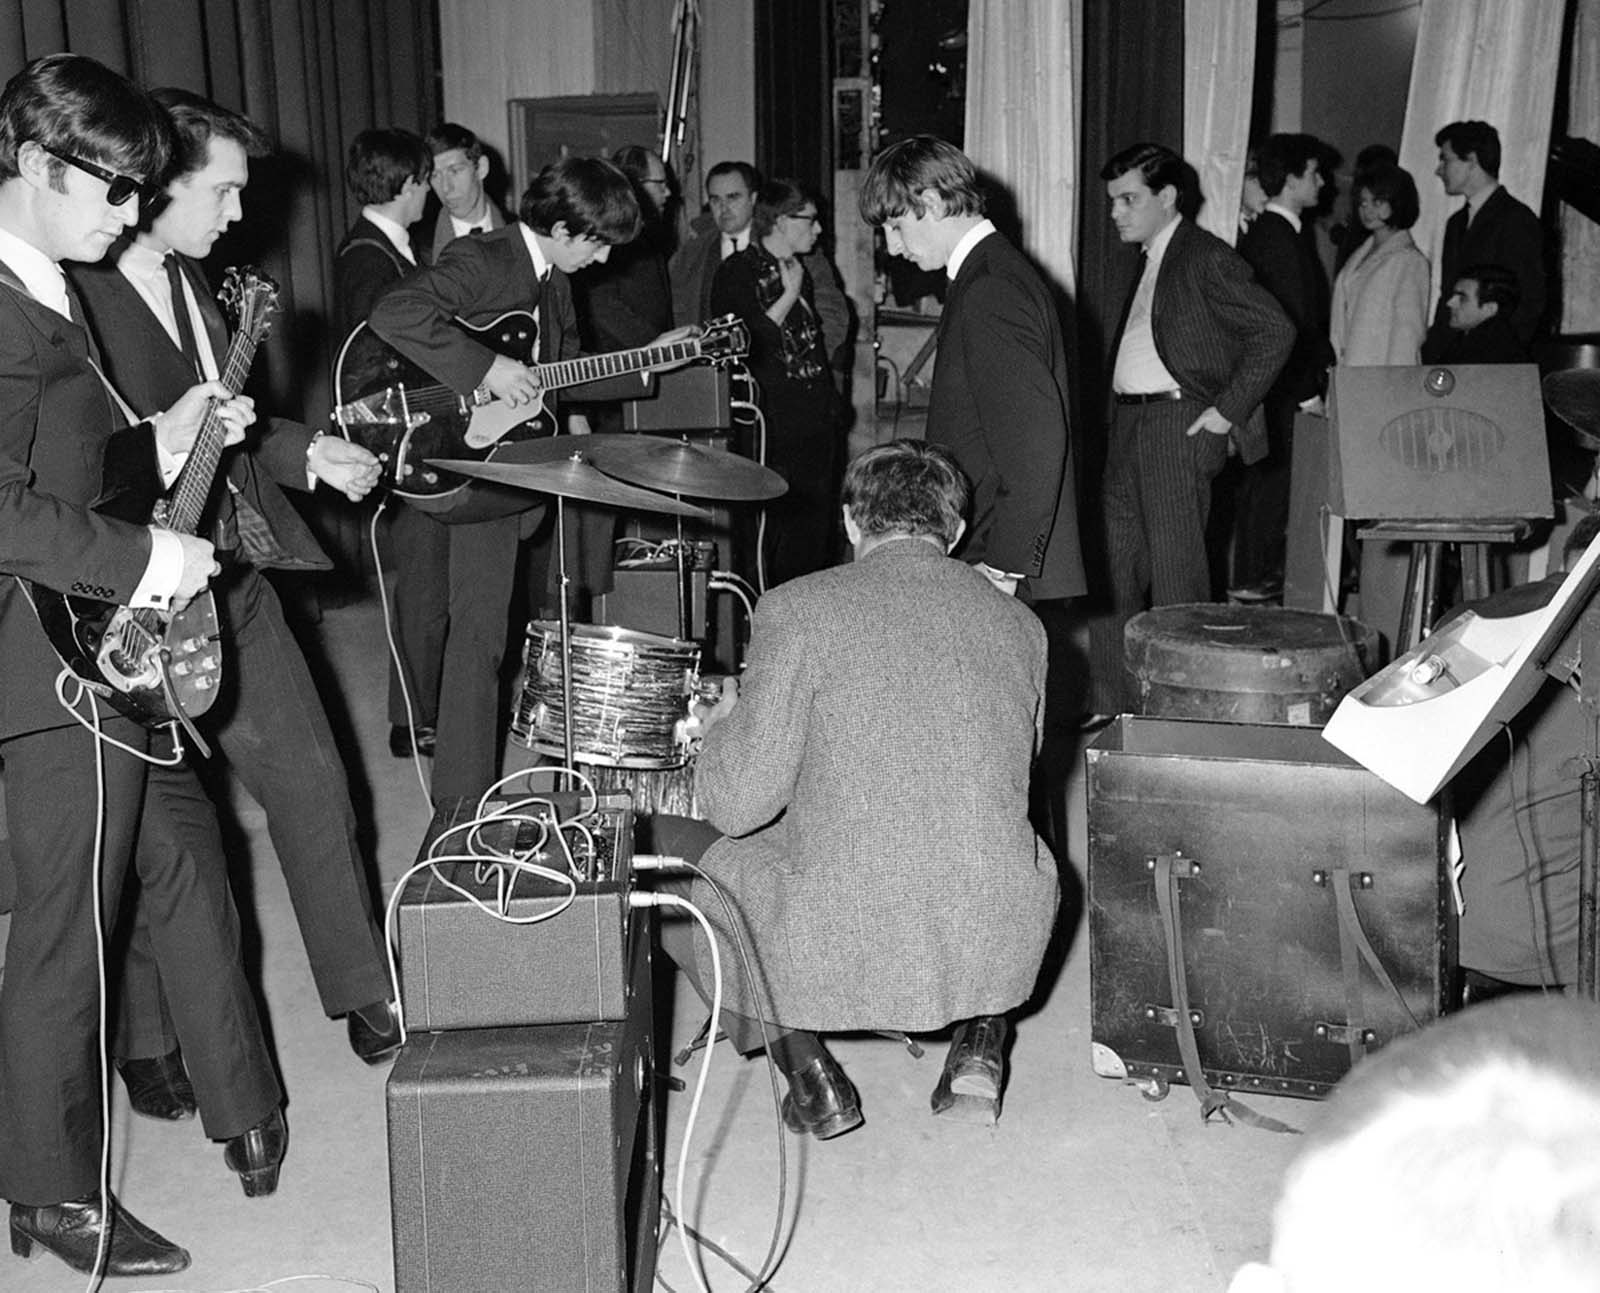 John Lennon, left; George Harrison, center holding guitar; and Ringo Starr from the Beatles, backstage in Versailles, France, on January 15, 1964.